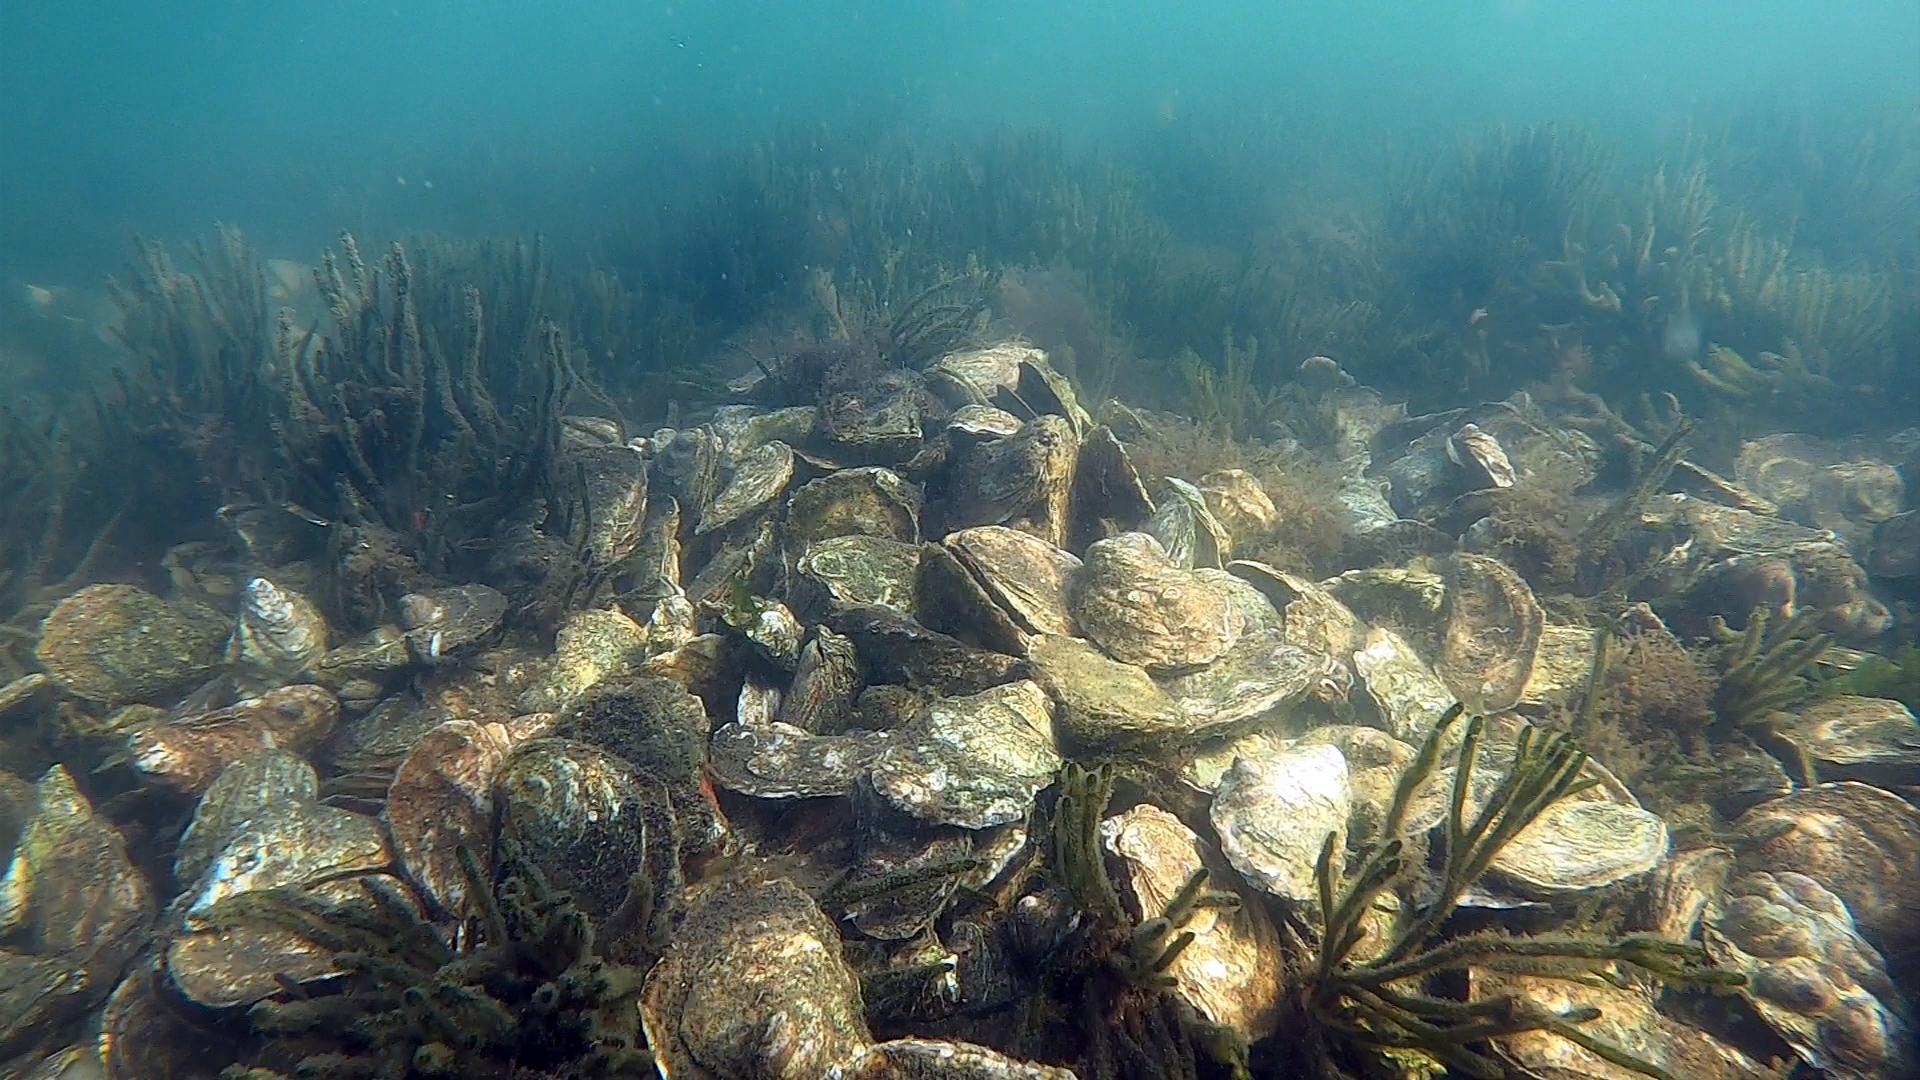 Shells and cells: Lack of oxygen and the presence of bacteria contribute to oyster mortality